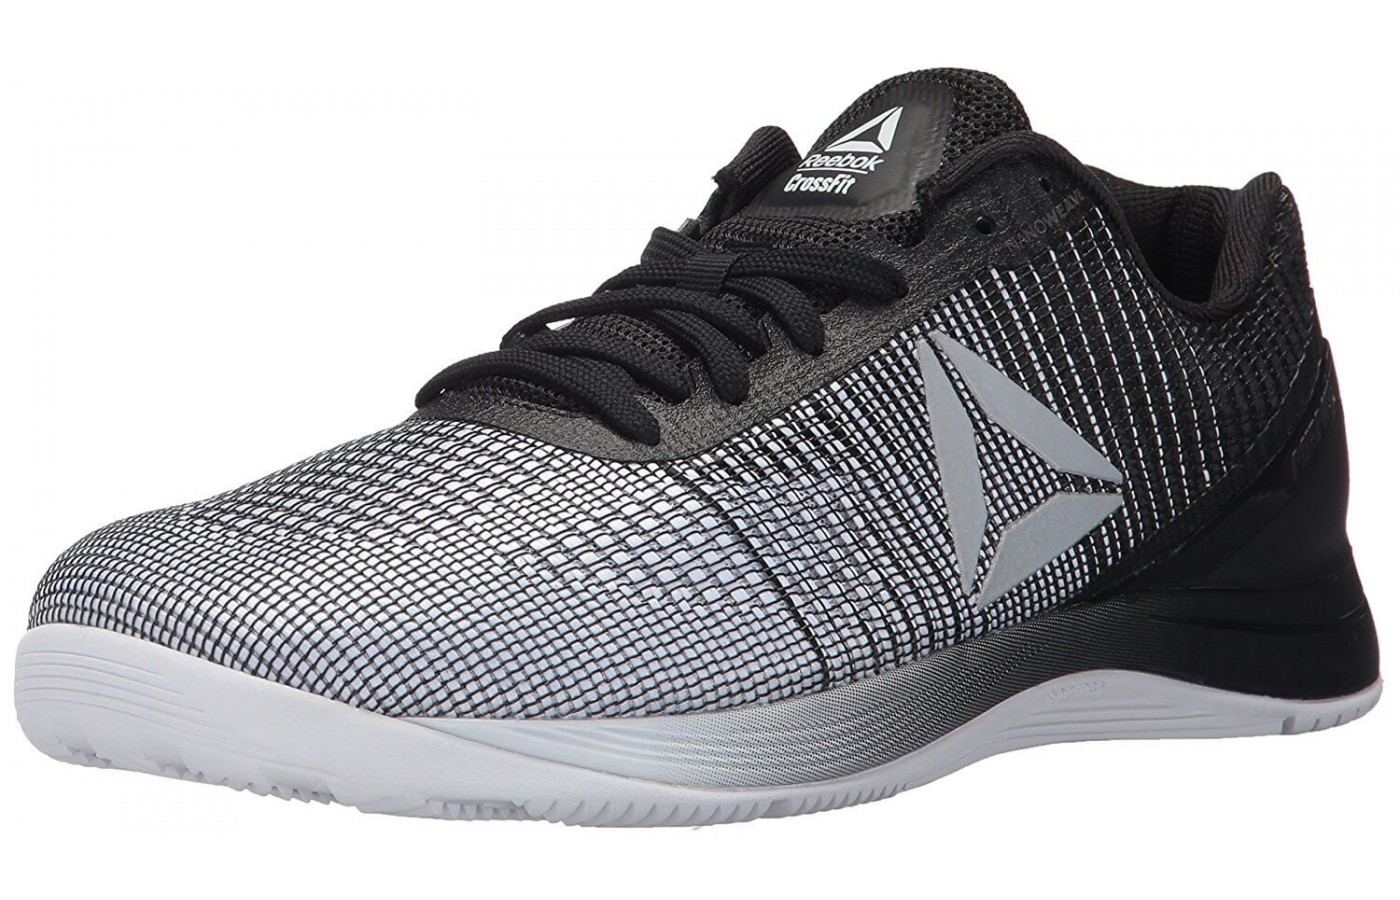 c45779603e Reebok CrossFit Nano 7 Weave Fully Reviewed